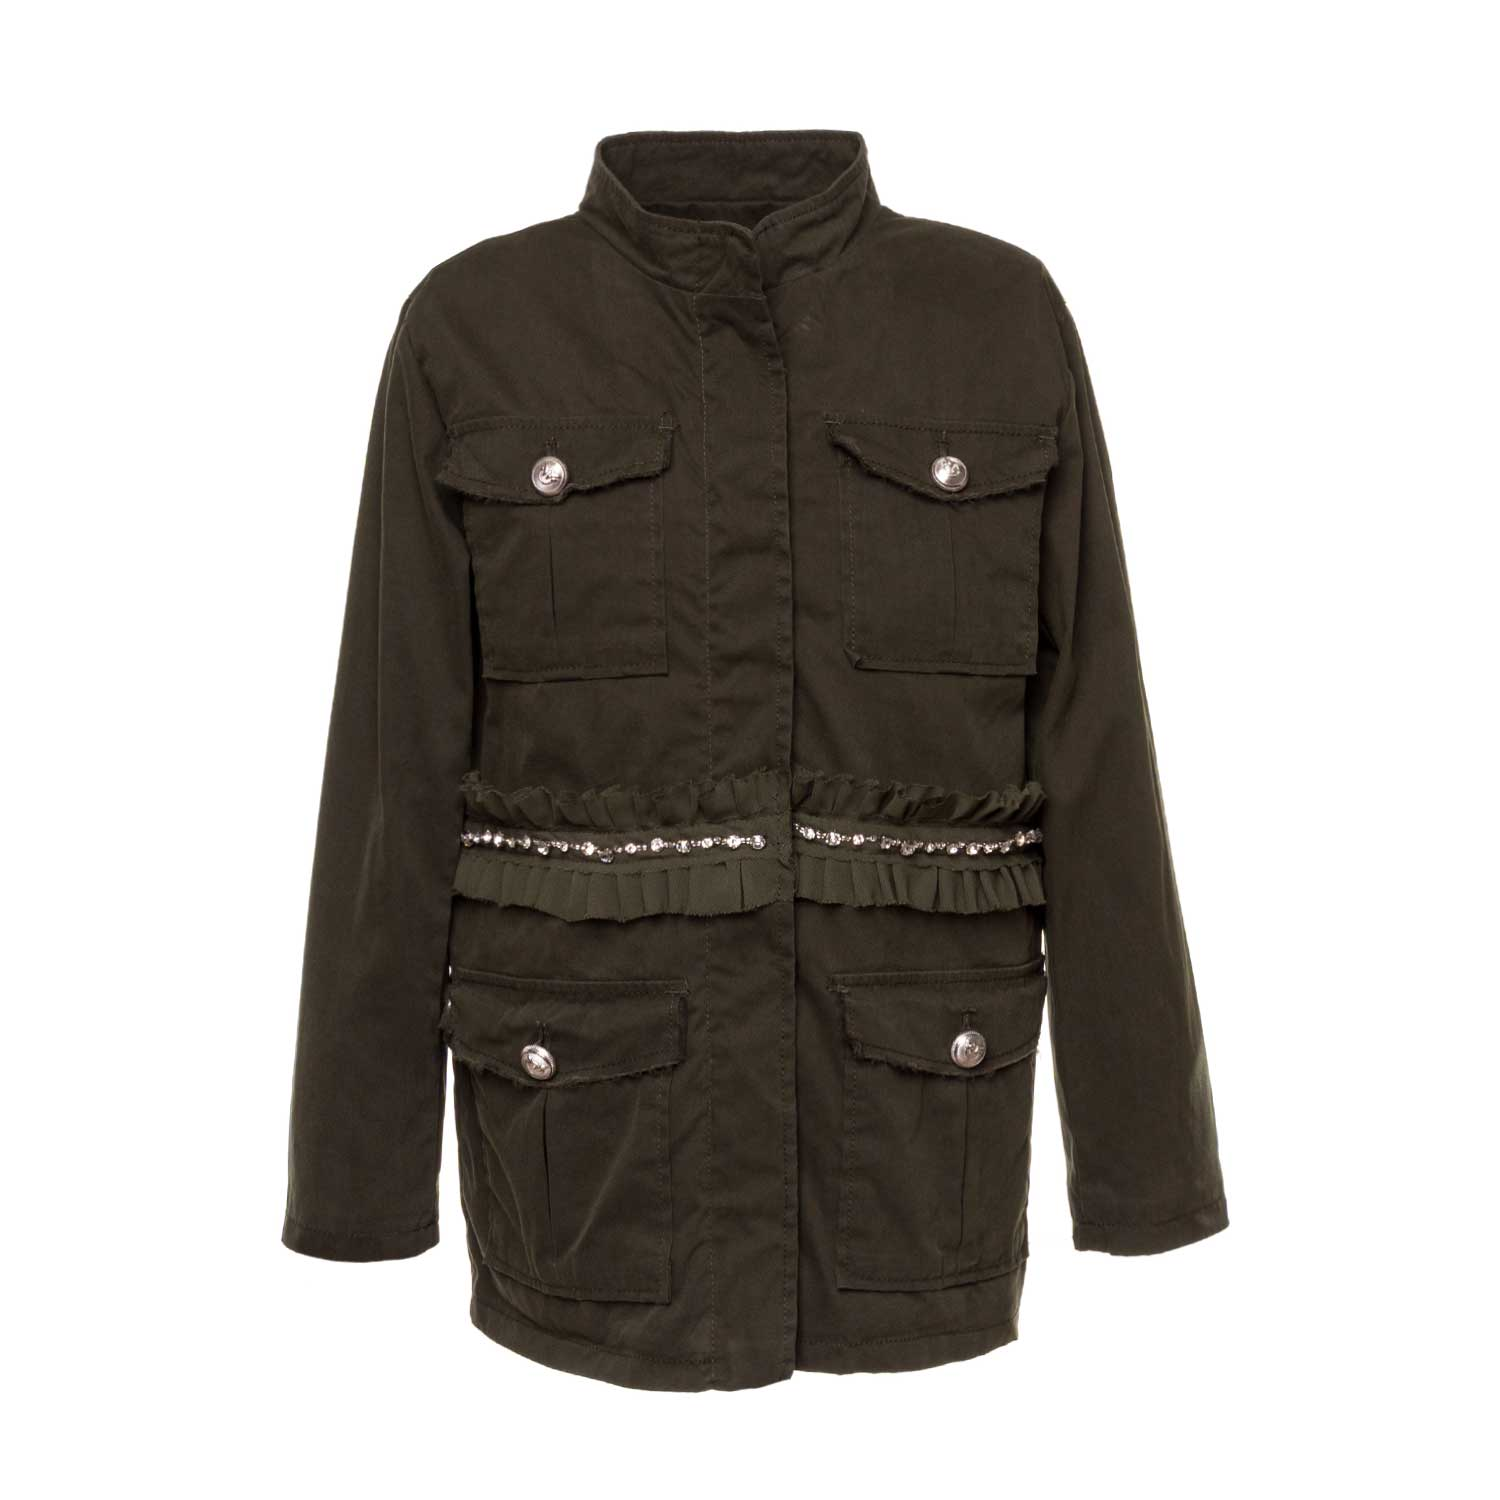 low priced 117e7 eab89 Green Metauro Parka For Girls